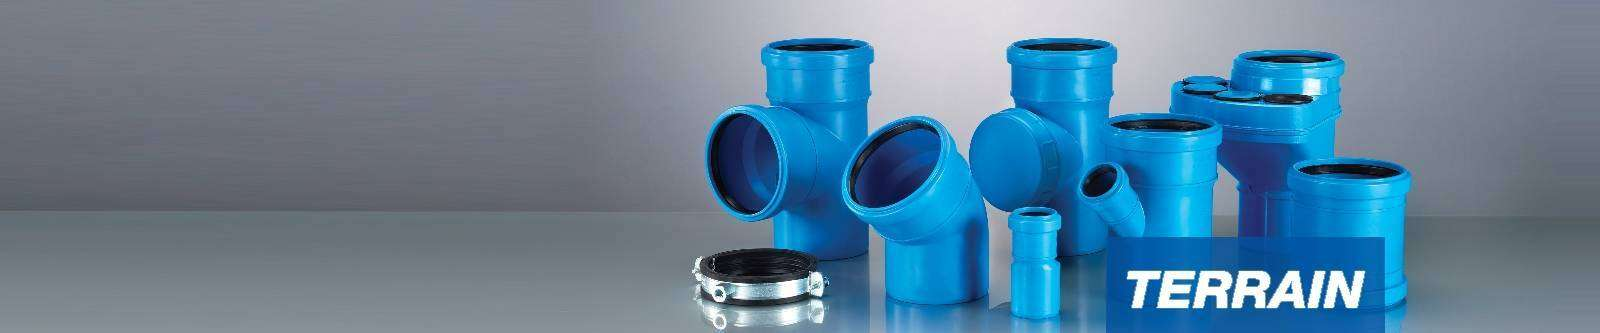 Noise Reducing Soil u0026 Waste & Noise Reducing Soil u0026 Waste Drainage Systems | Polypipe Terrain